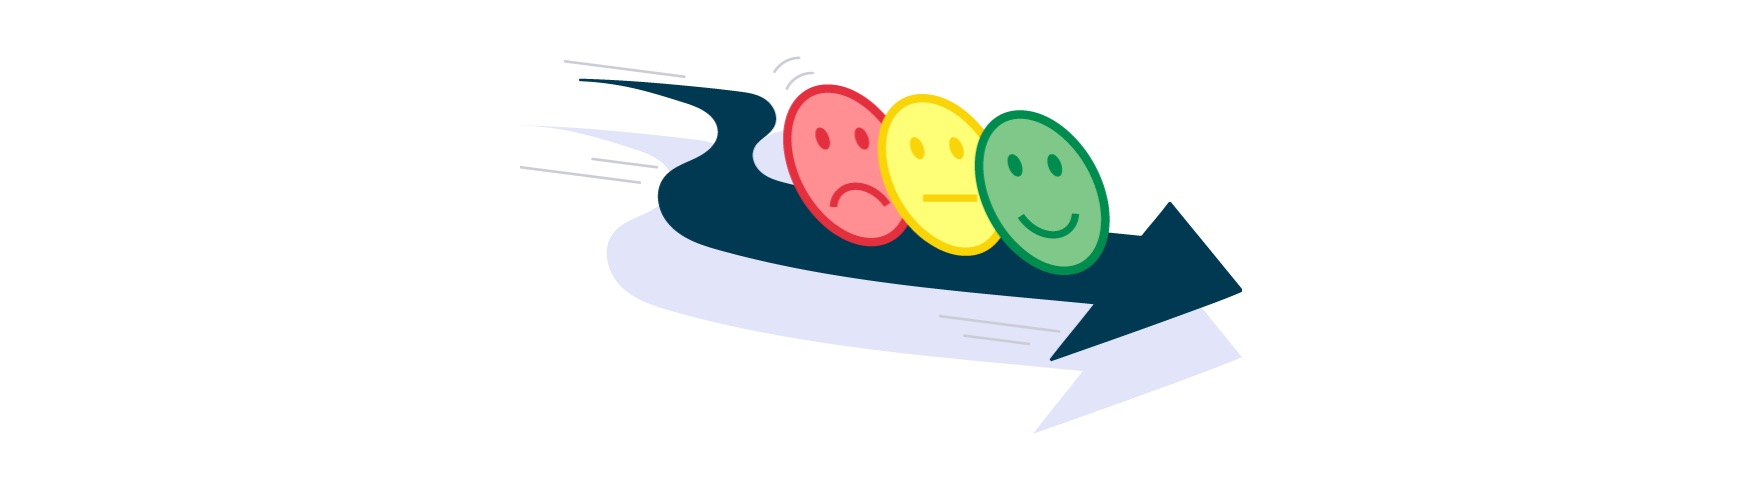 A happy green, neutral yellow, and sad red face illustration riding on top of an arrow pointing to the right